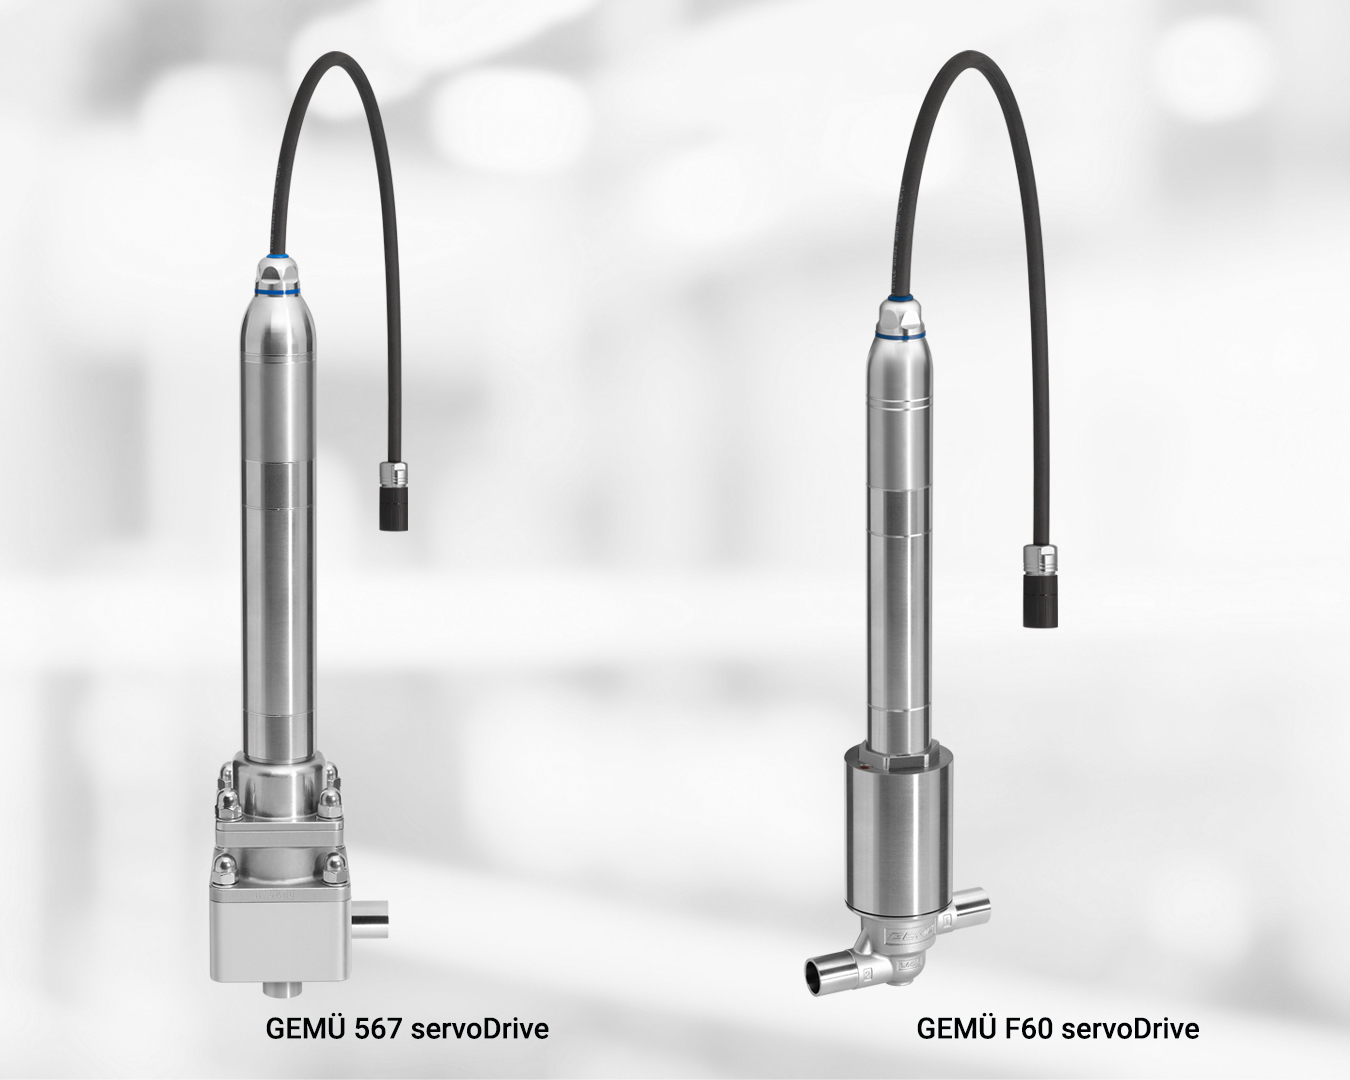 Product picture of GEMÜ filling and control valves with motorized servo actuator